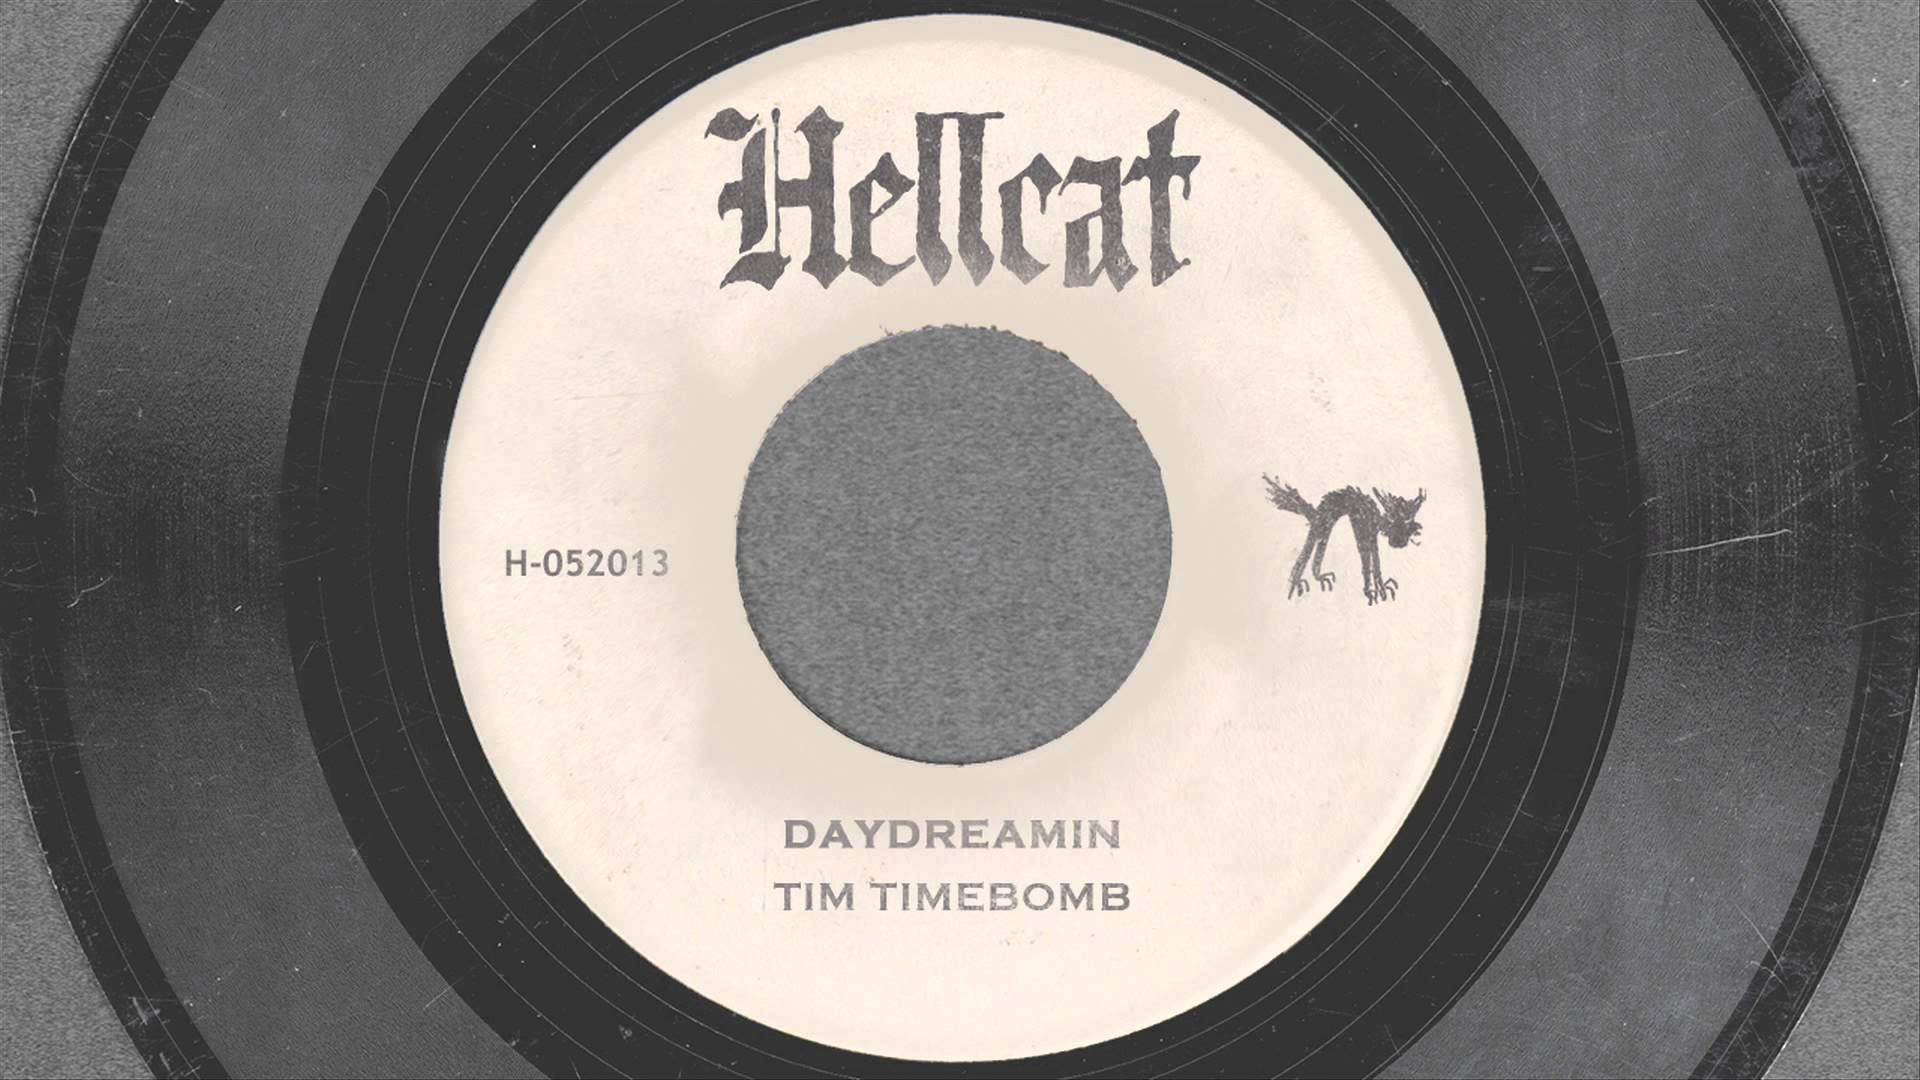 Daydreamin' - Tim Timebomb and Friends | hellcats  | Music